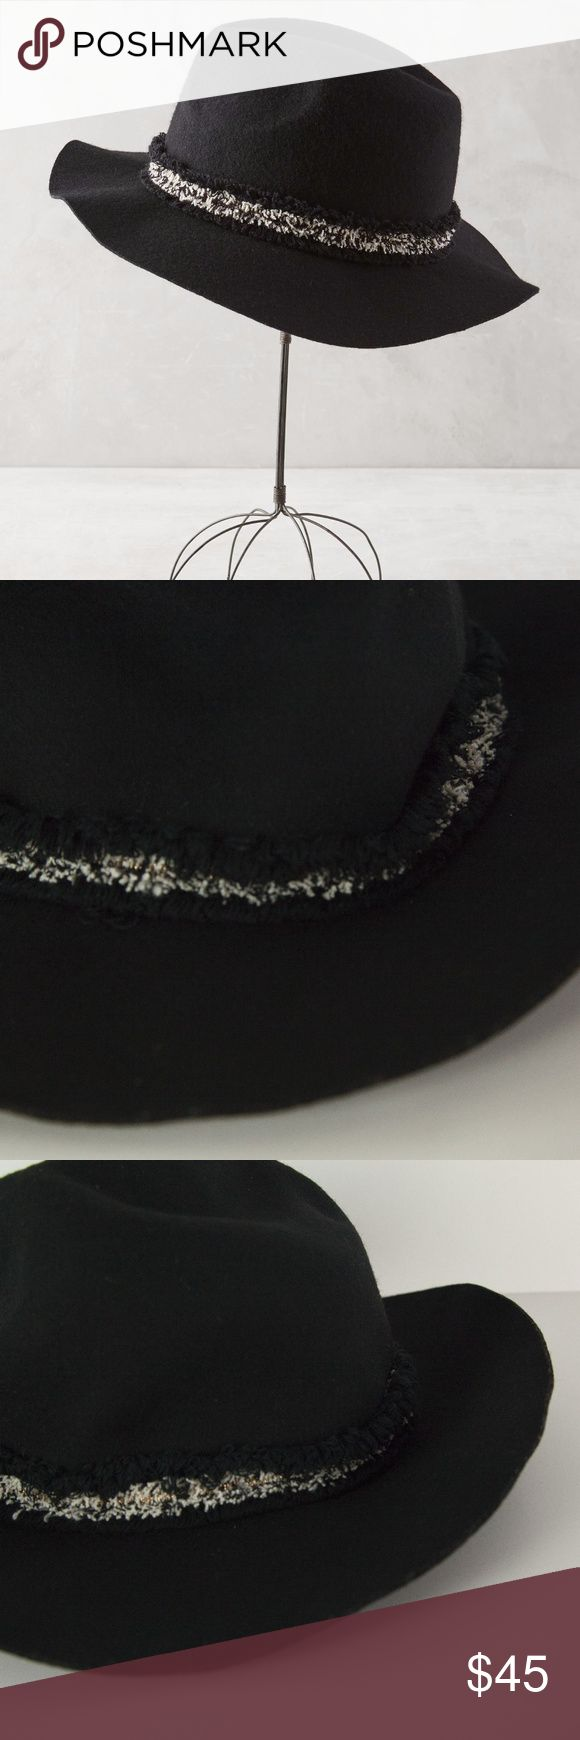 Anthropologie Black Guild Rancher Hat 100% Wool SUPER chic Anthropologie Guild Rancher Hat in black. Features black white and gold fringe trim. Style #37099231. This is just a little linty from being tossed around my closet - no flaws, perfect condition, brand new with tags!  Material: 100% Wool  🚫no trades 🚫no modeling ✅dog friendly/🚭smoke free home ✅reasonable offers ✅bundle & save! Anthropologie Accessories Hats